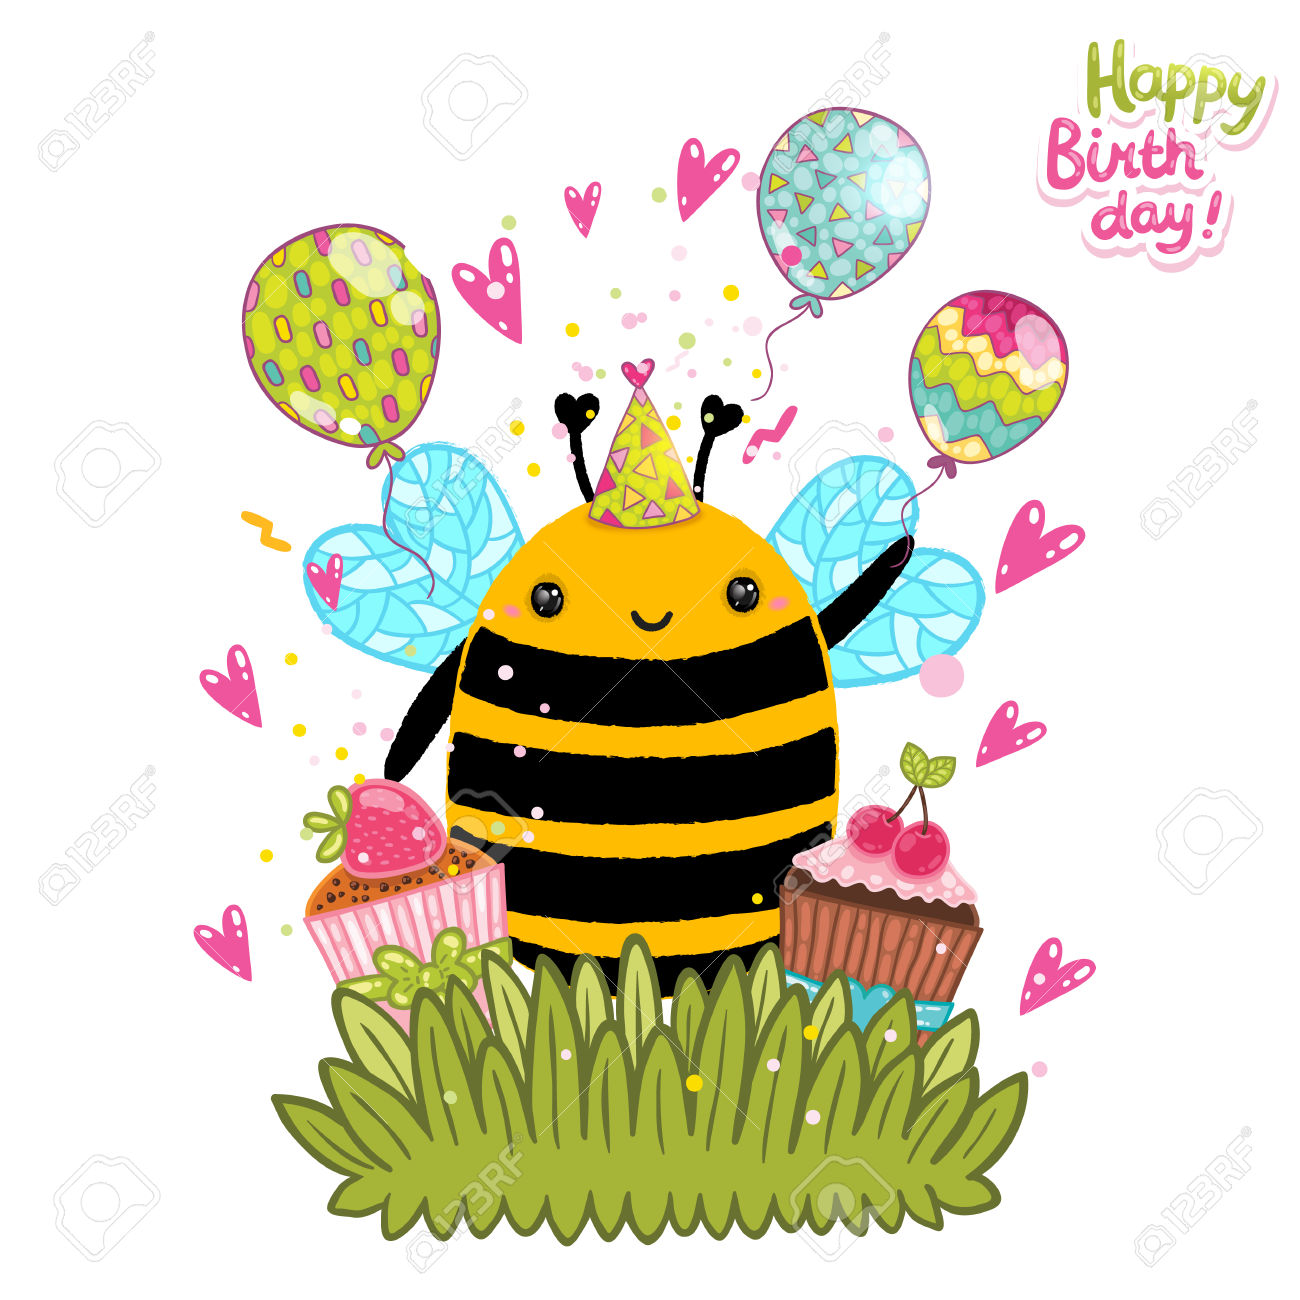 1300x1300 Birthday Card Holiday Clipart, Explore Pictures